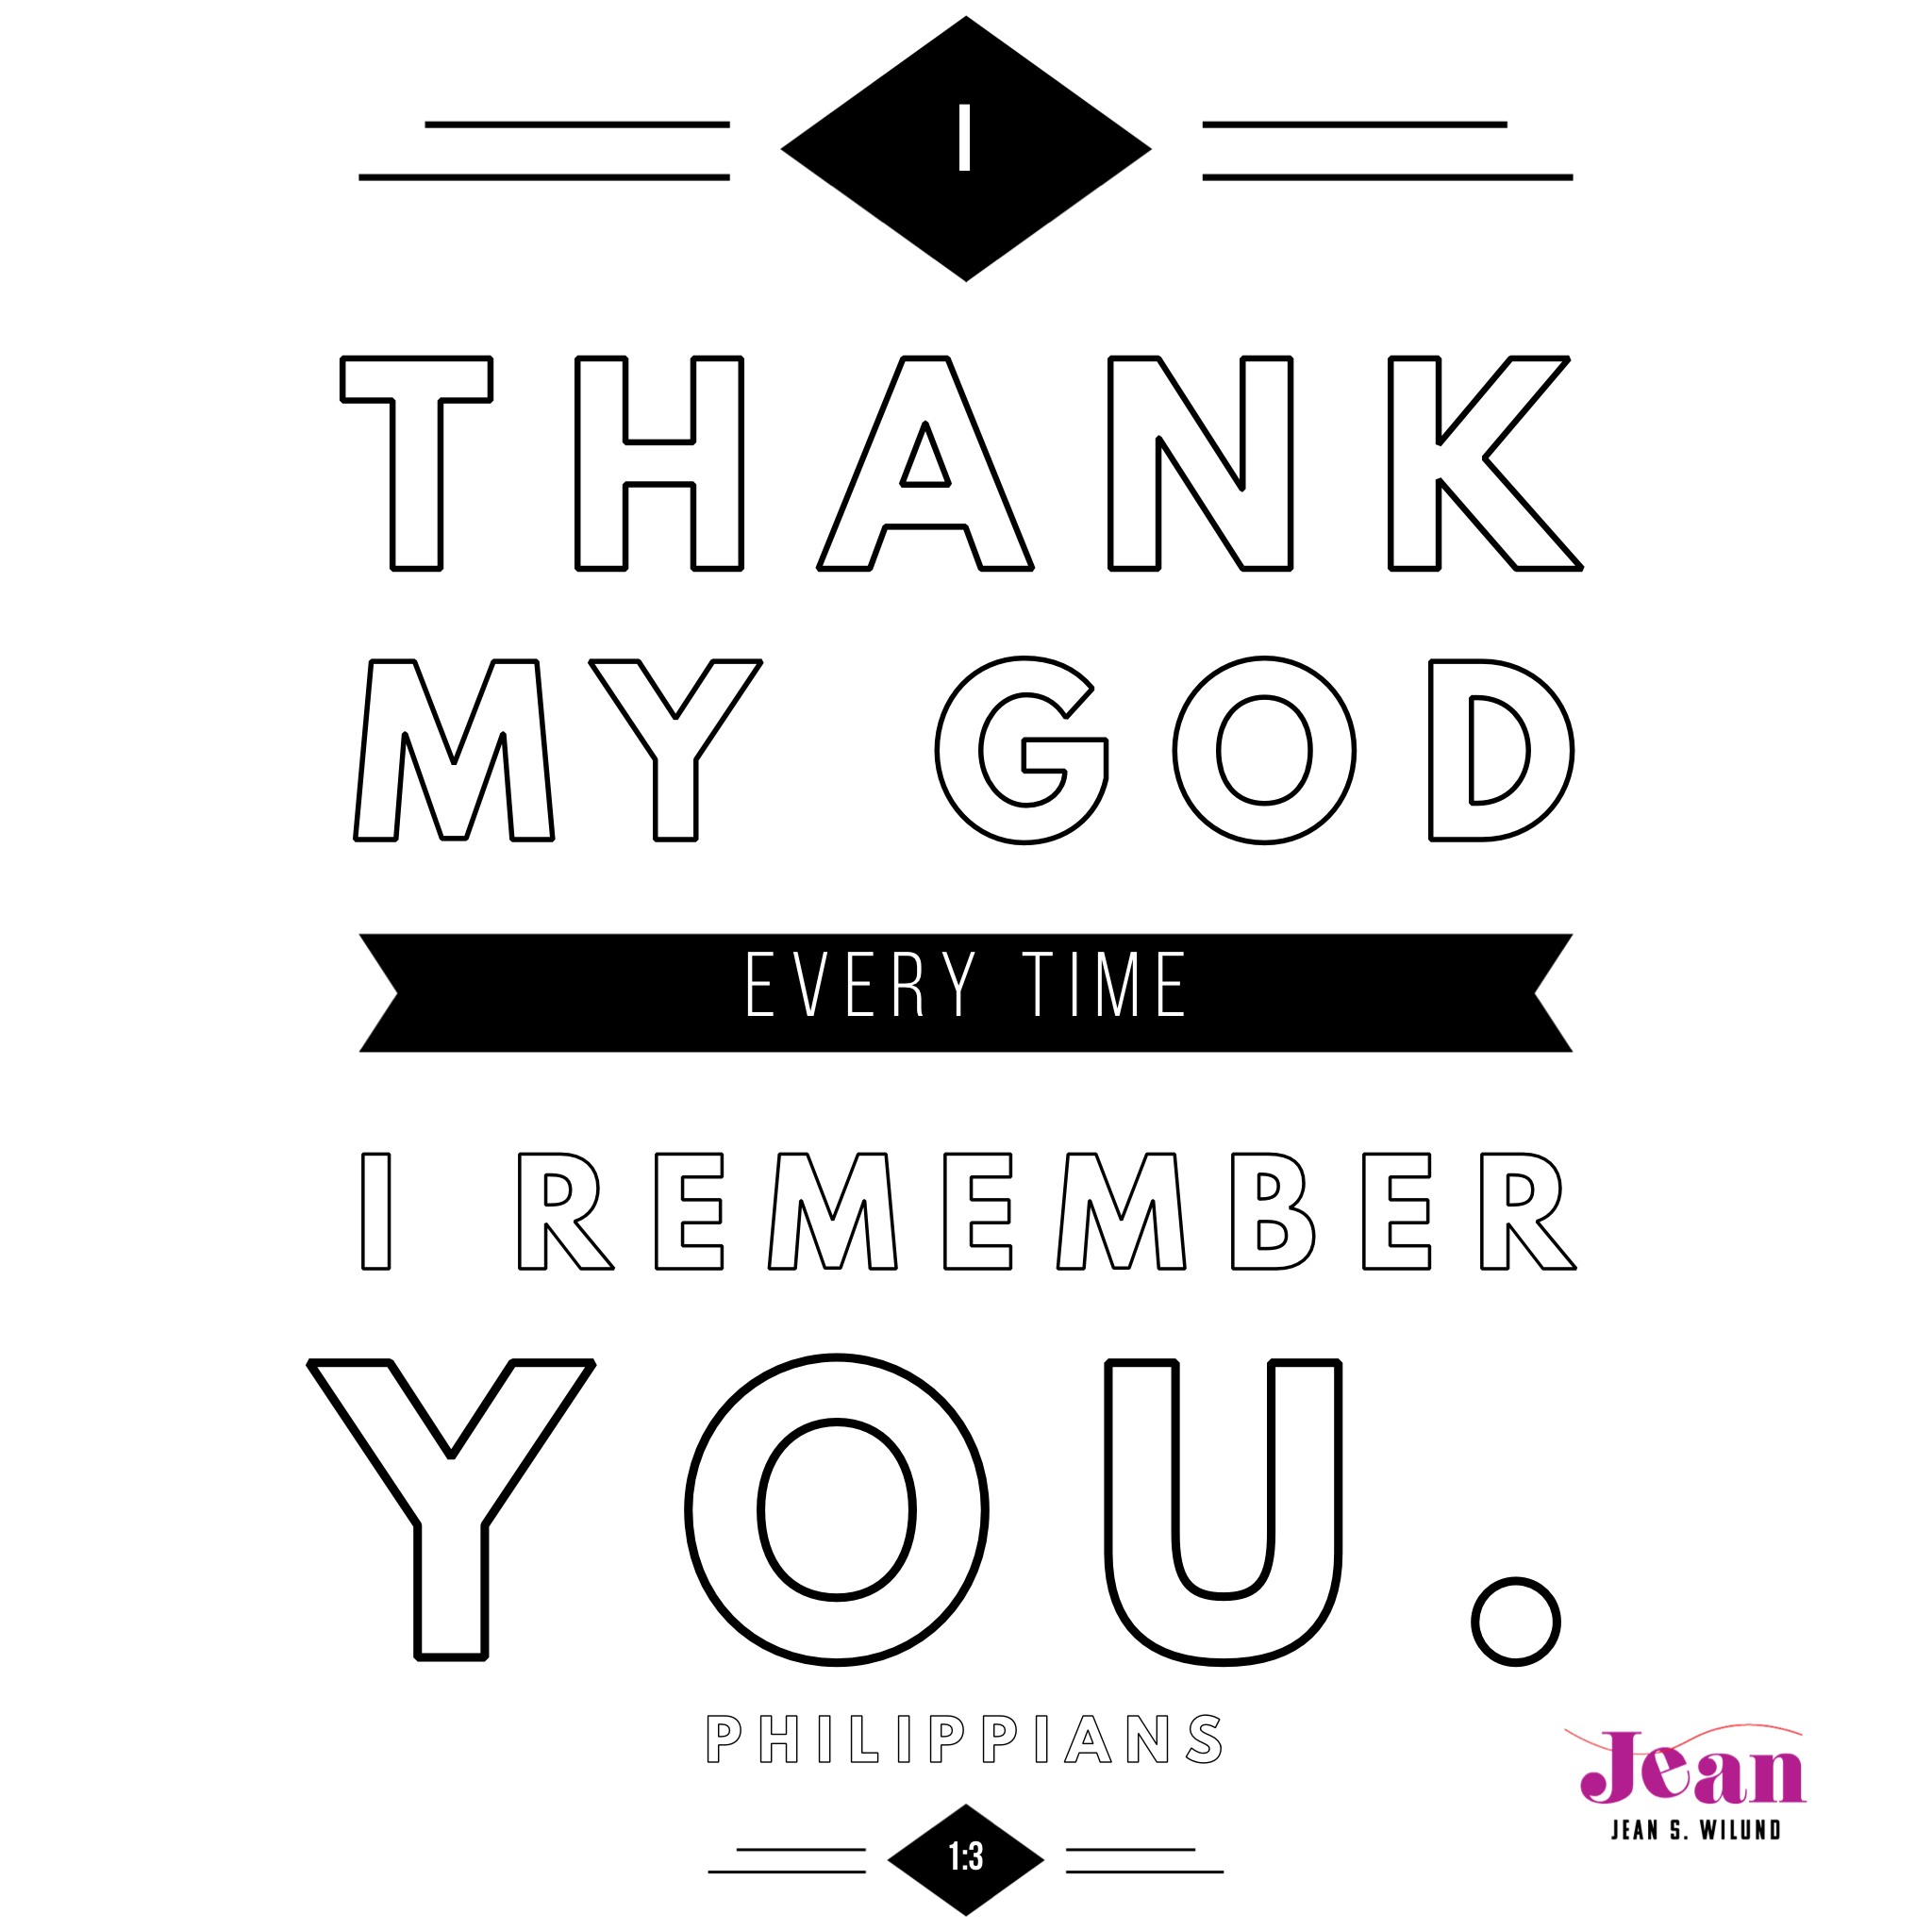 I Thank My God Every Time I Remember You - Thanksgiving (Philippians 1:3 & James 1:17) @jeanwilund.com